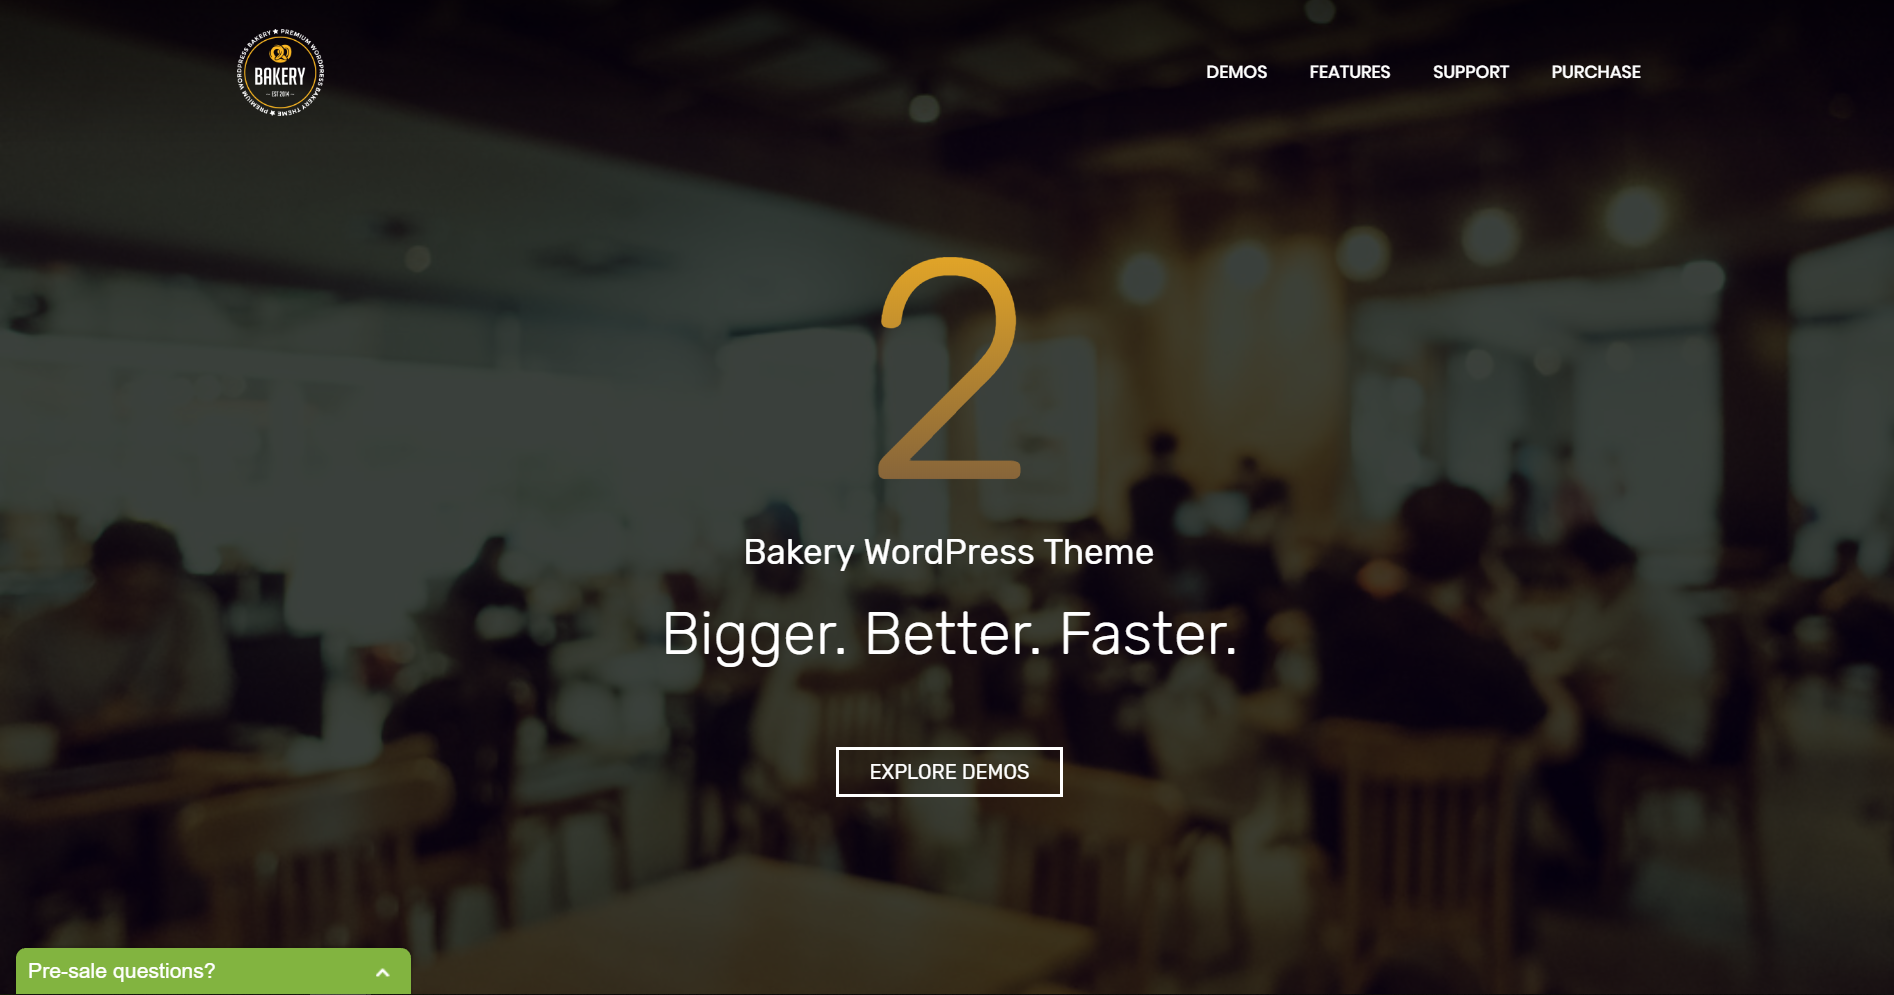 19. Bakery WordPress Bakery, Cakery & Food Theme